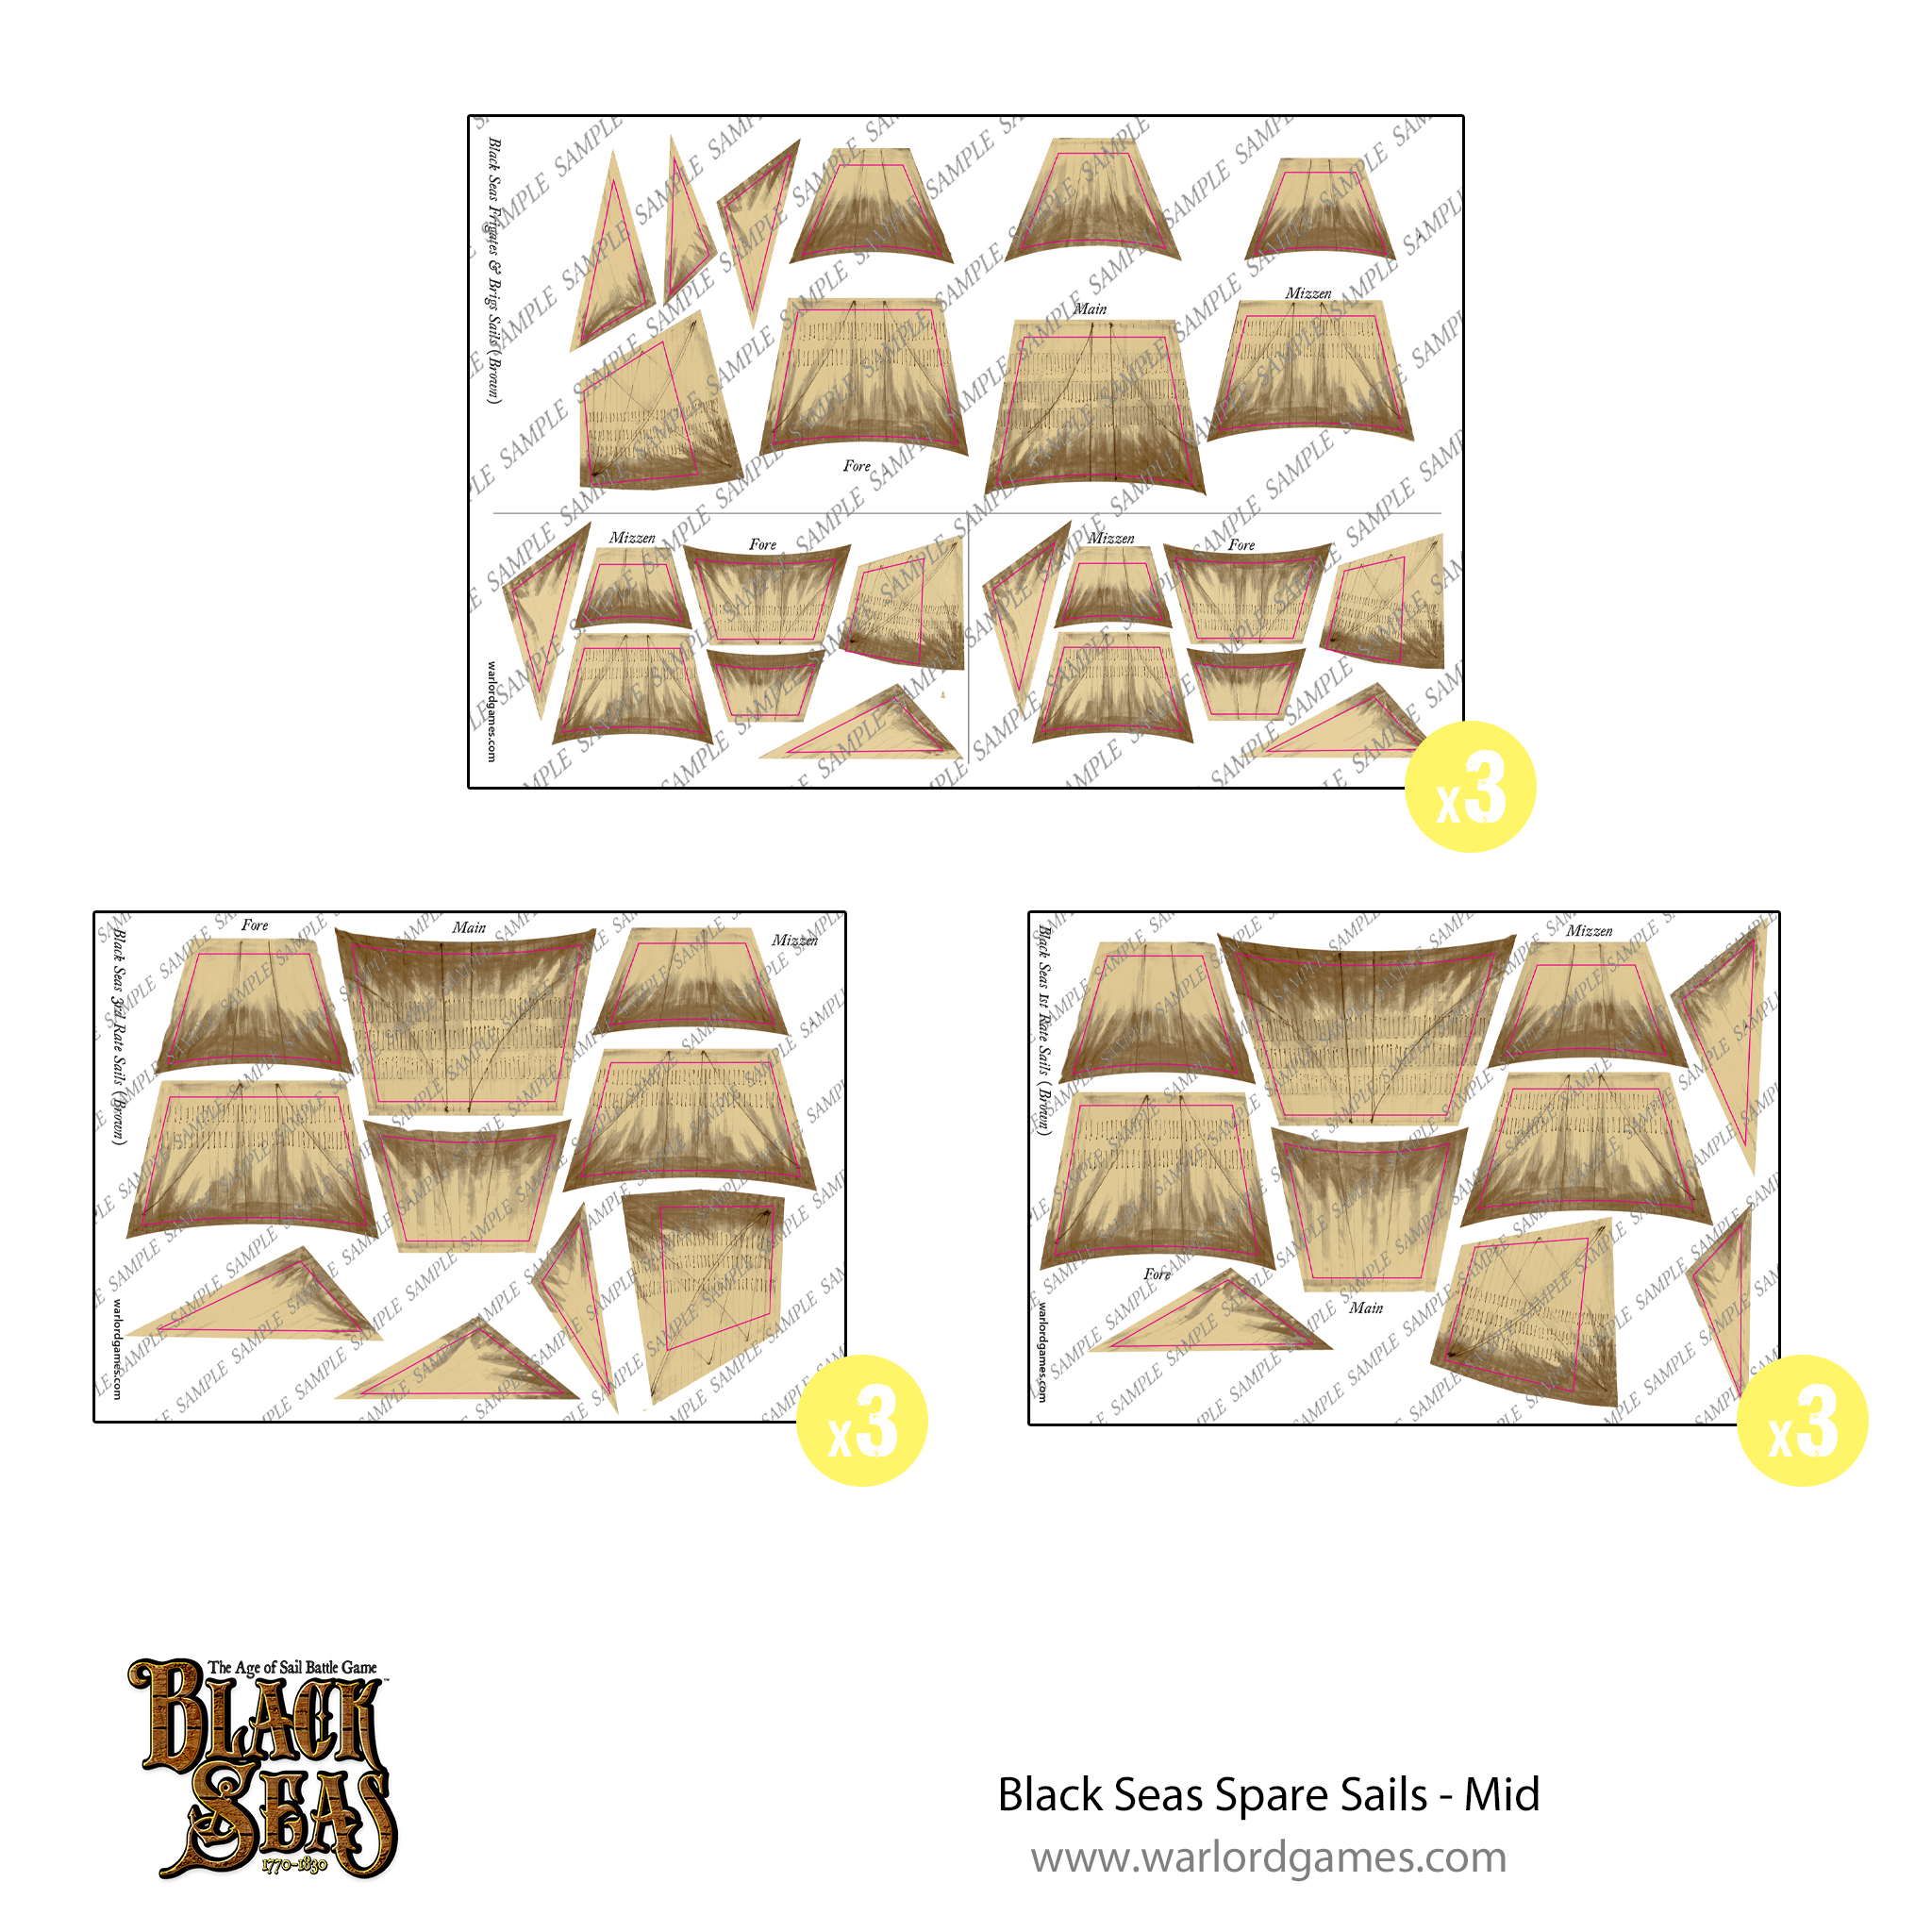 Black Seas Spare sails - mid